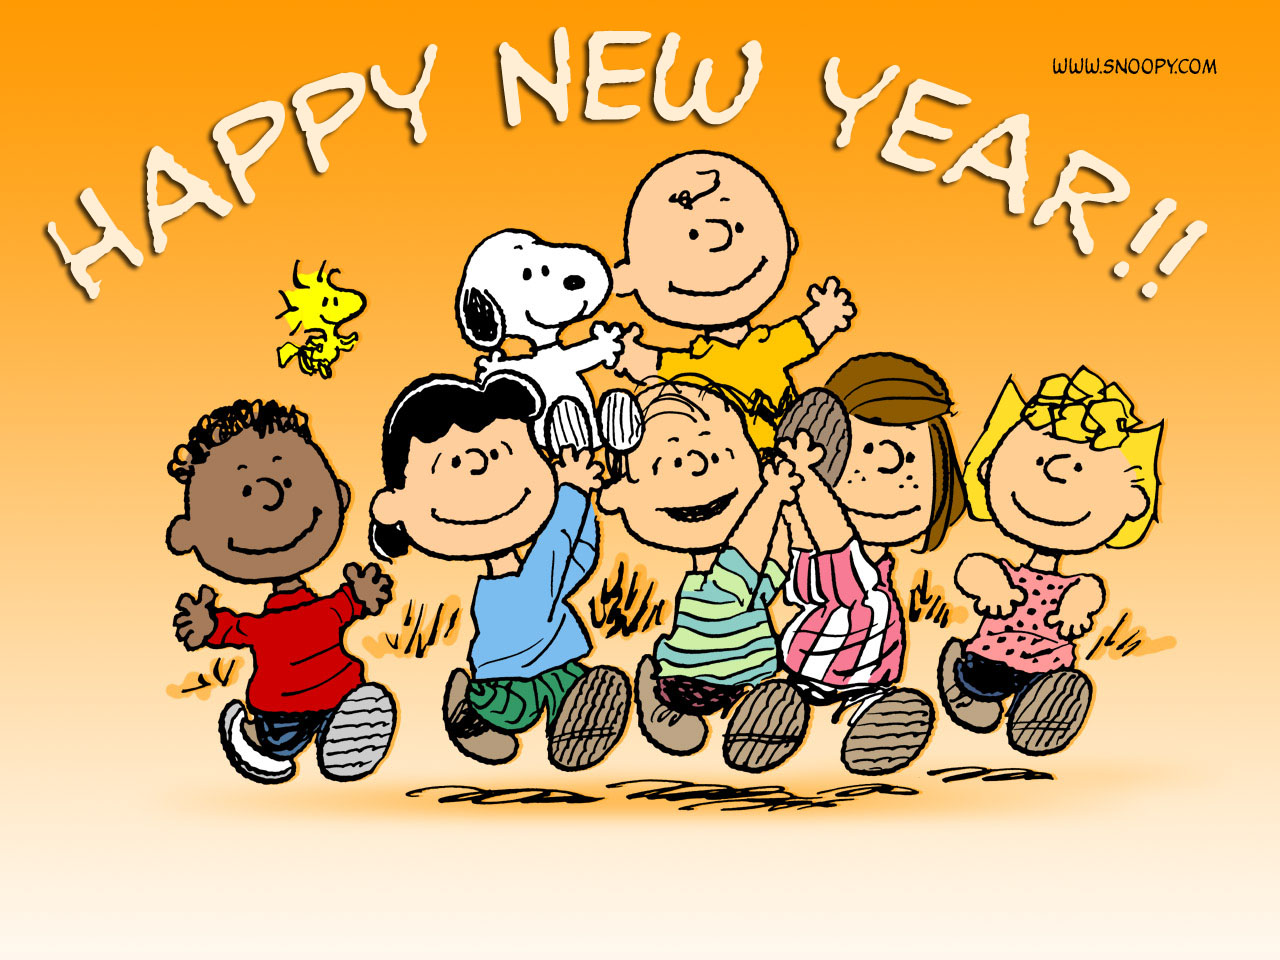 Happy New Year Snoopy Wallpaper Christian Wallpapers And Backgrounds